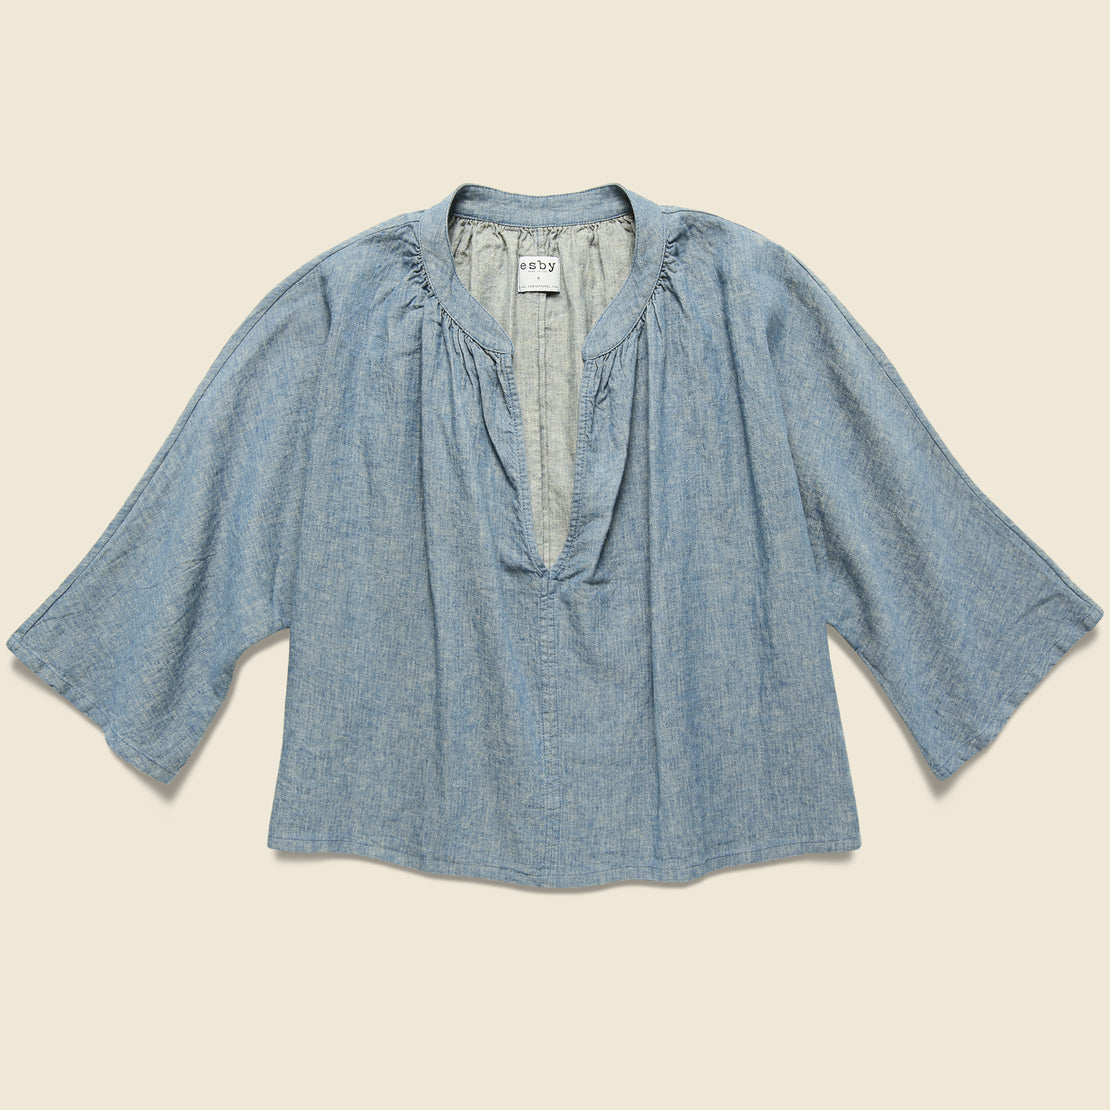 Esby Lily Top - Chambray Herringbone